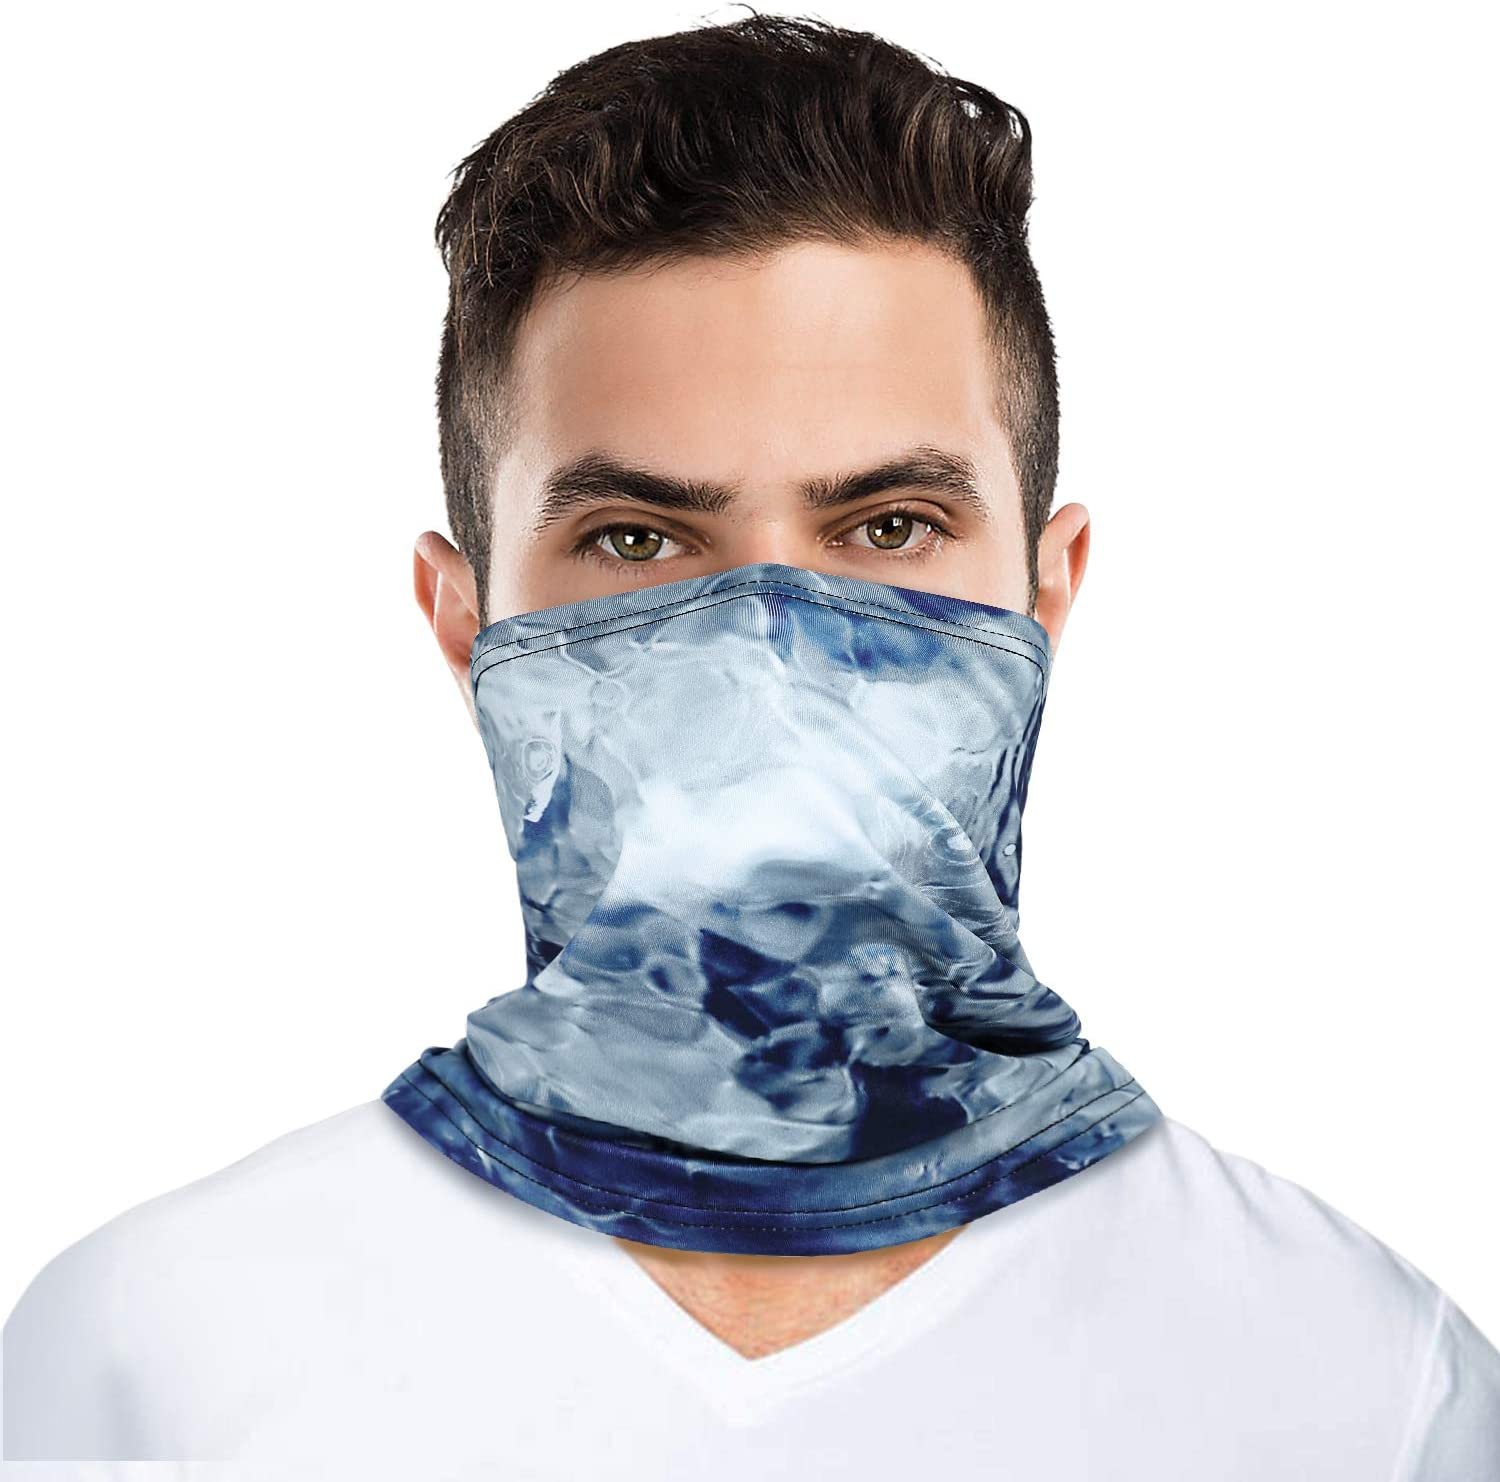 TRUSCEND Neck Gaiter Face Covering Mask Scarf Fishing Cycling Running Hiking Breathable Lightweight Reusable face coverings Balaclava for Men Women